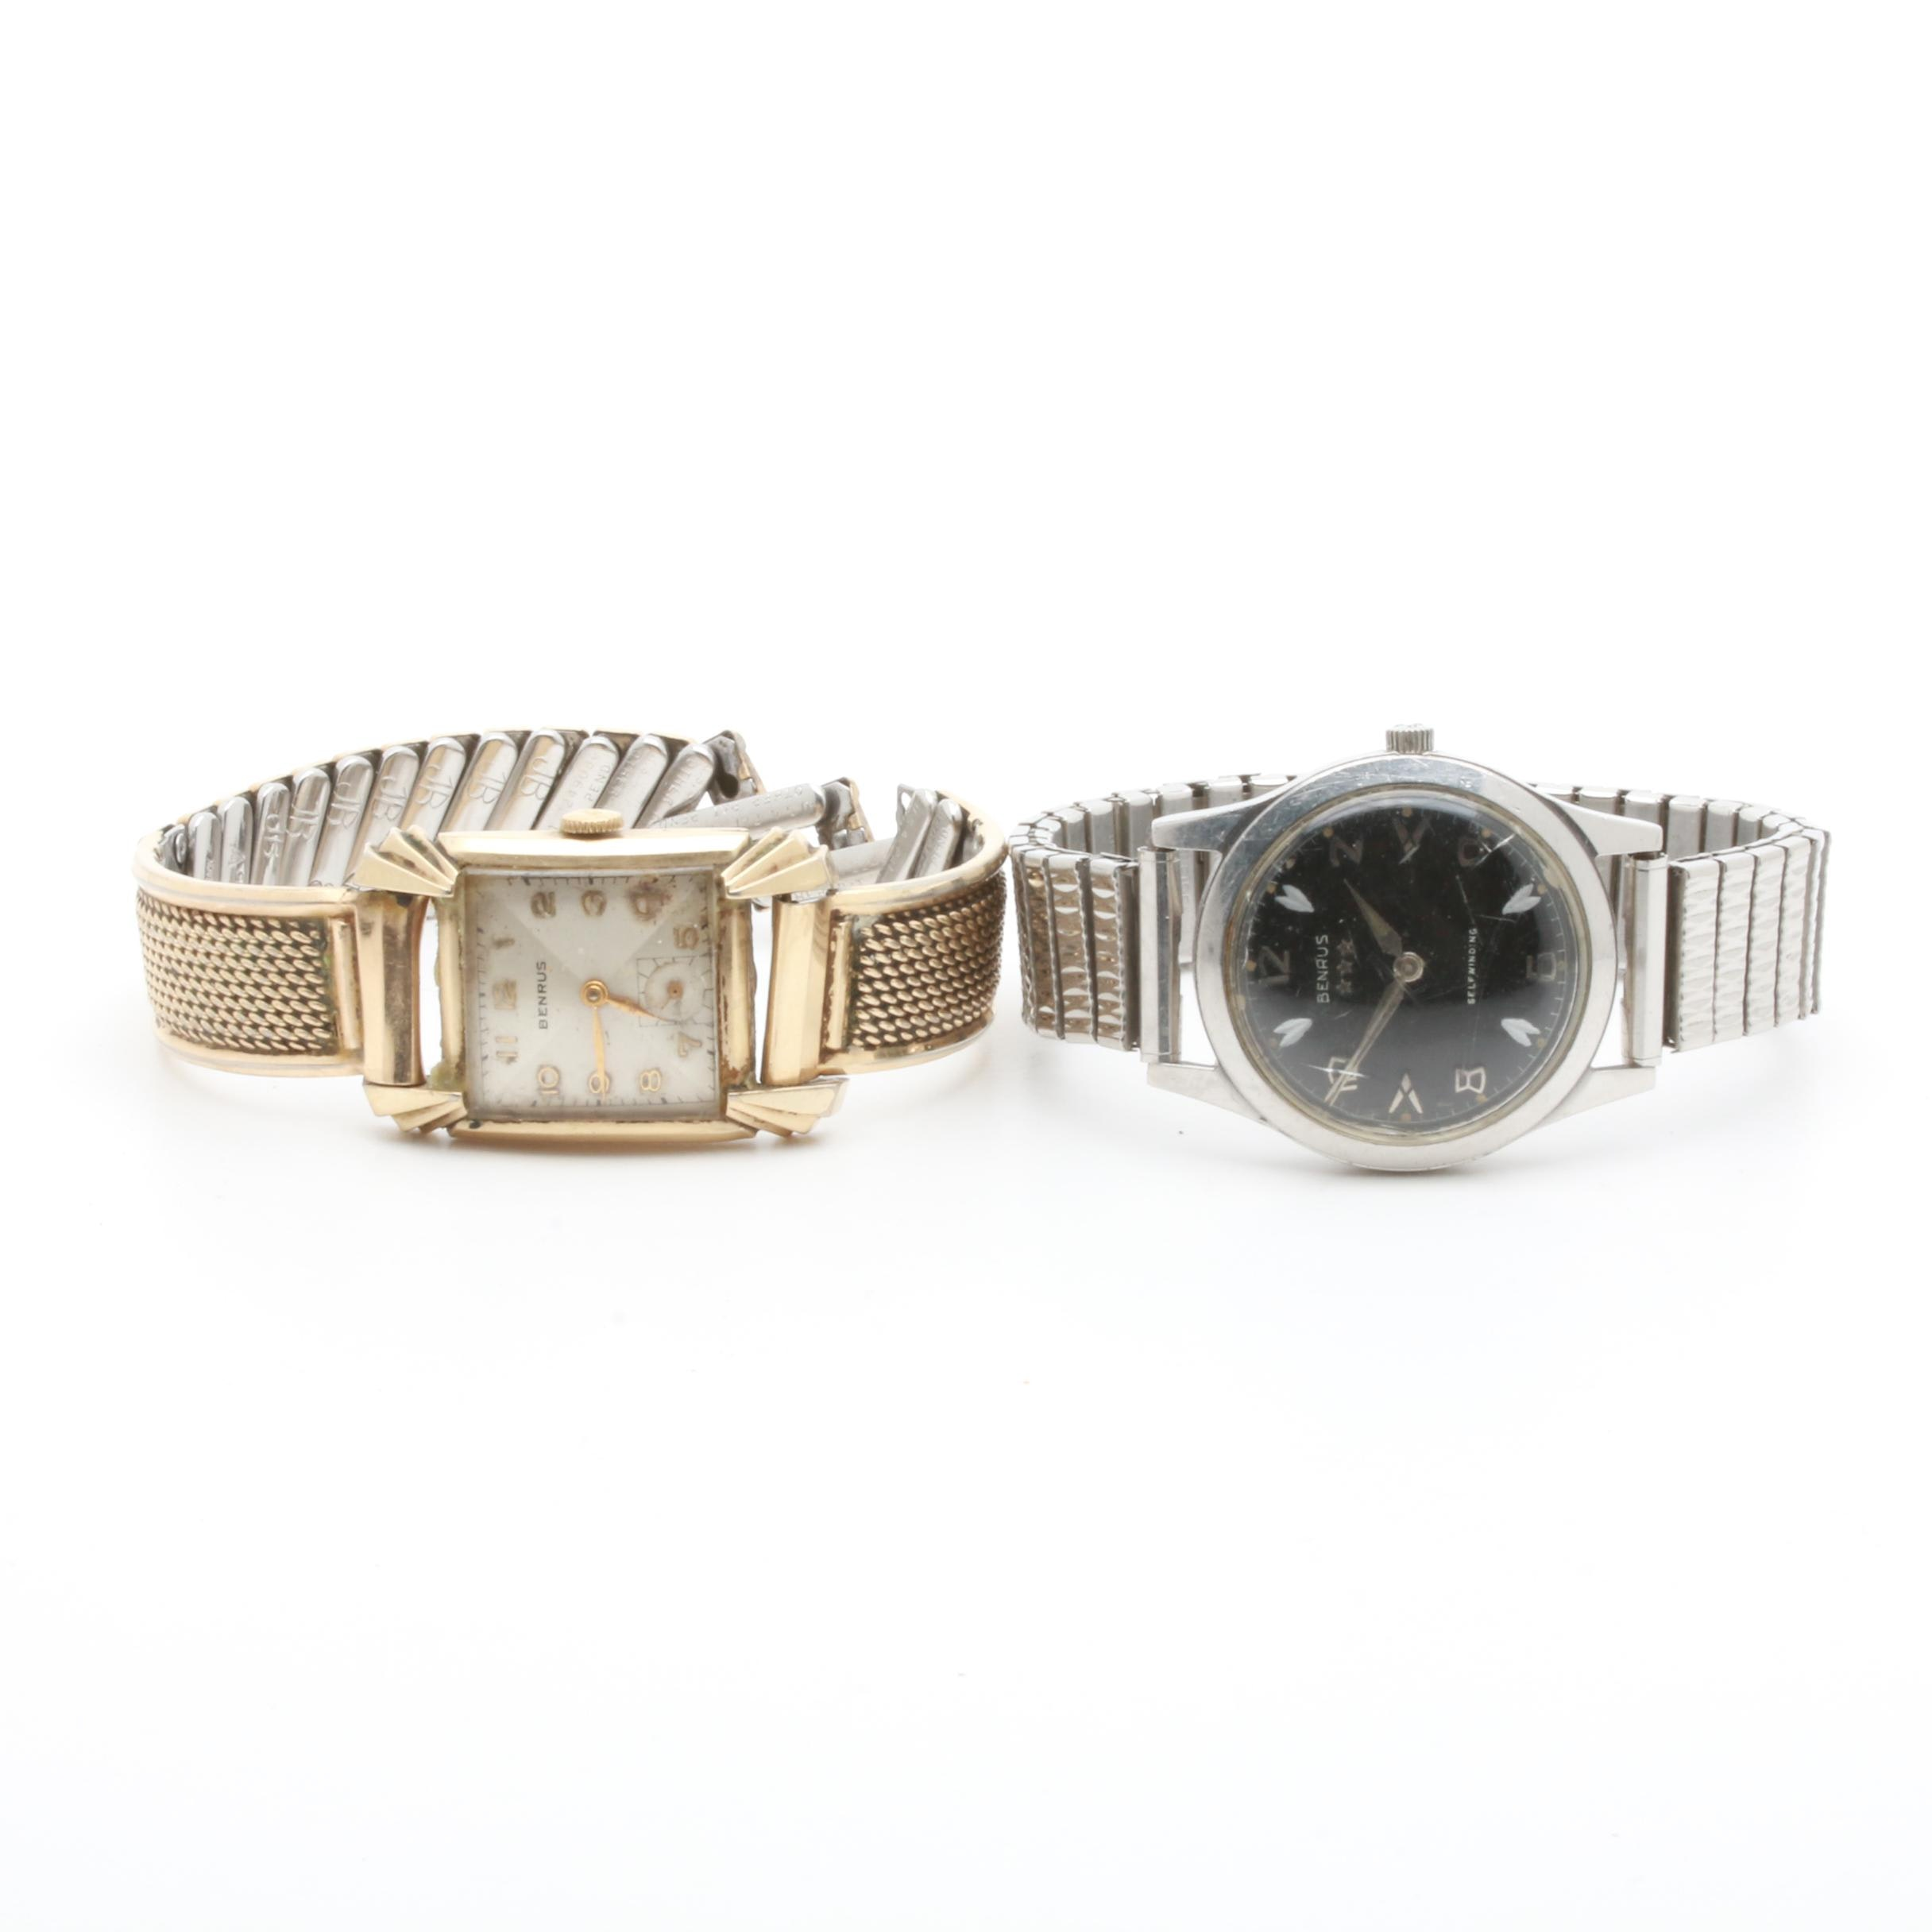 Vintage Benrus Wristwatches